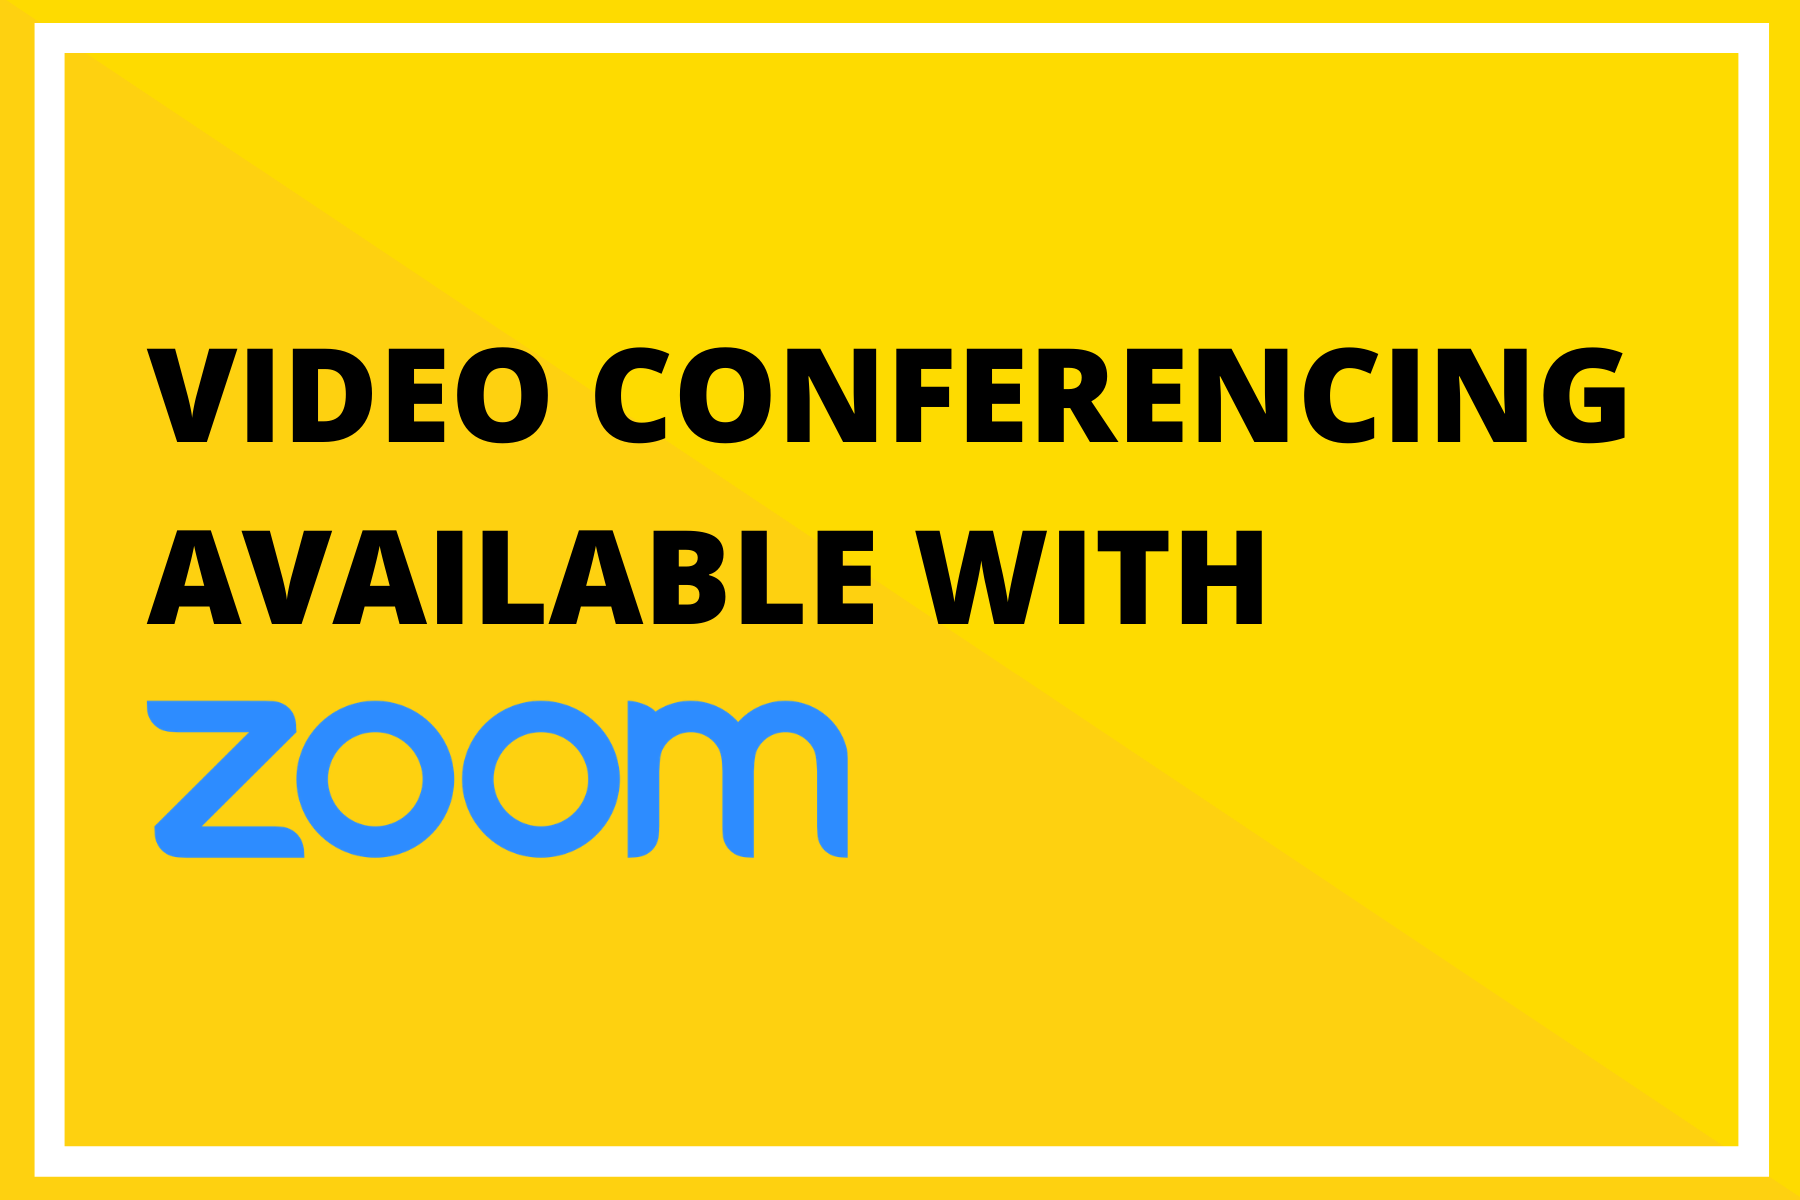 Video Conferencing and Teleconferencing Available via Zoom